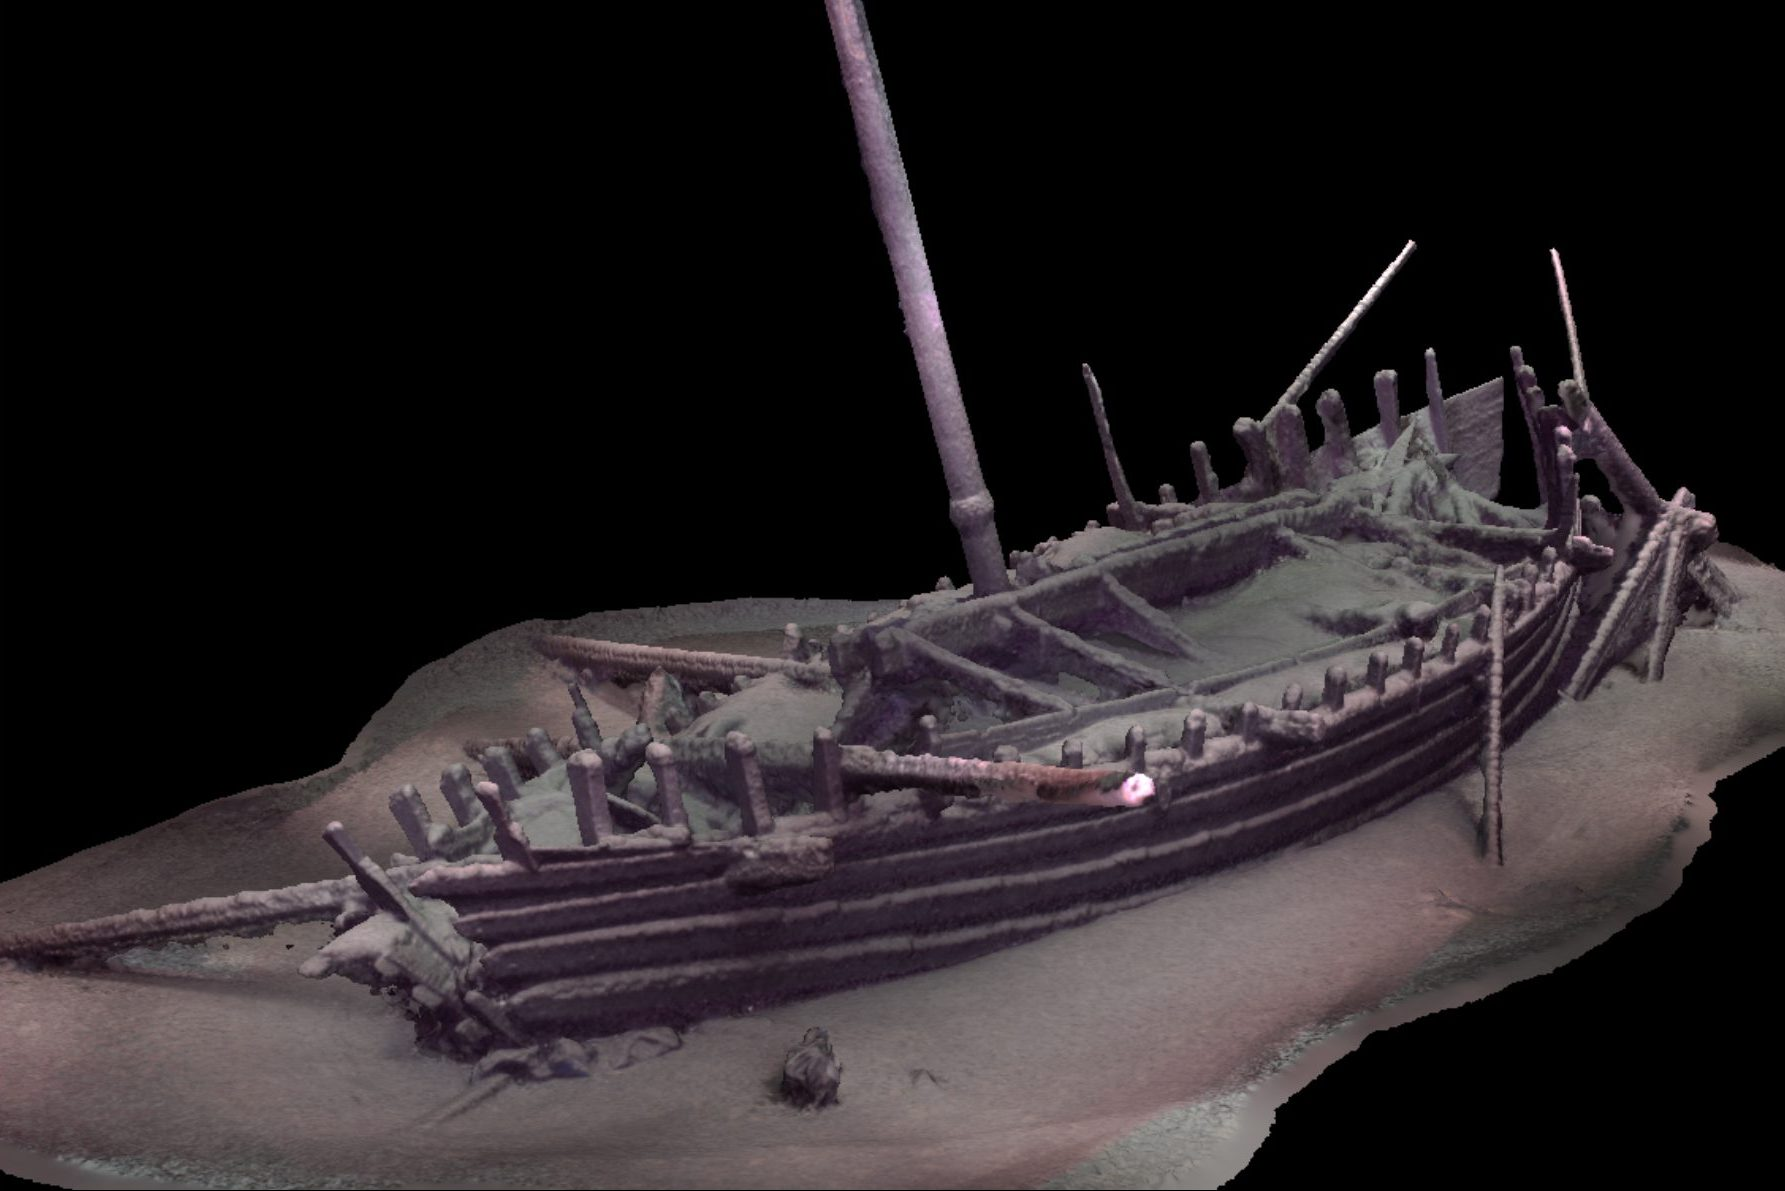 A 3-D re-creation of a Roman ship found on the floor of the Black Sea. (Black Sea MAP)